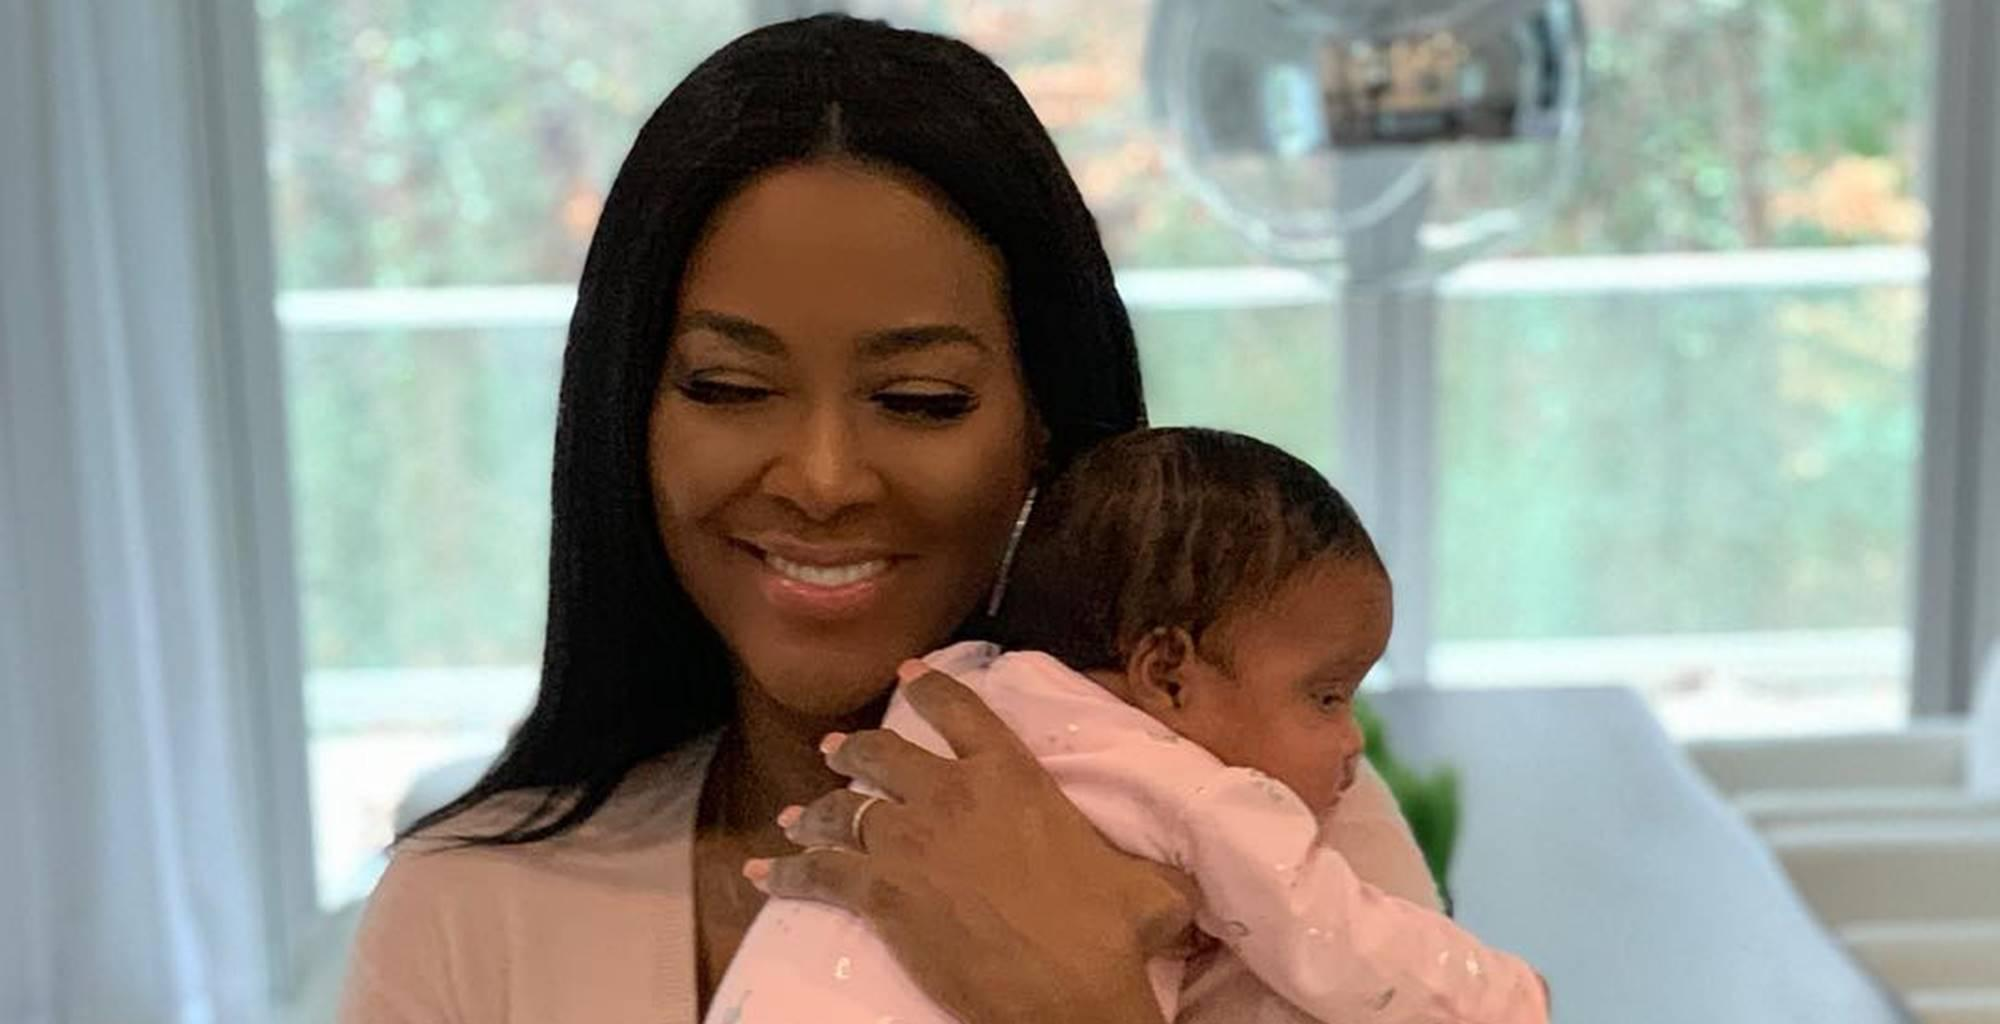 Kenya Moore Shares Heart-Melting Picture And Tells The World Why Baby Brooklyn Is The Ruler Of Her Days And Nights